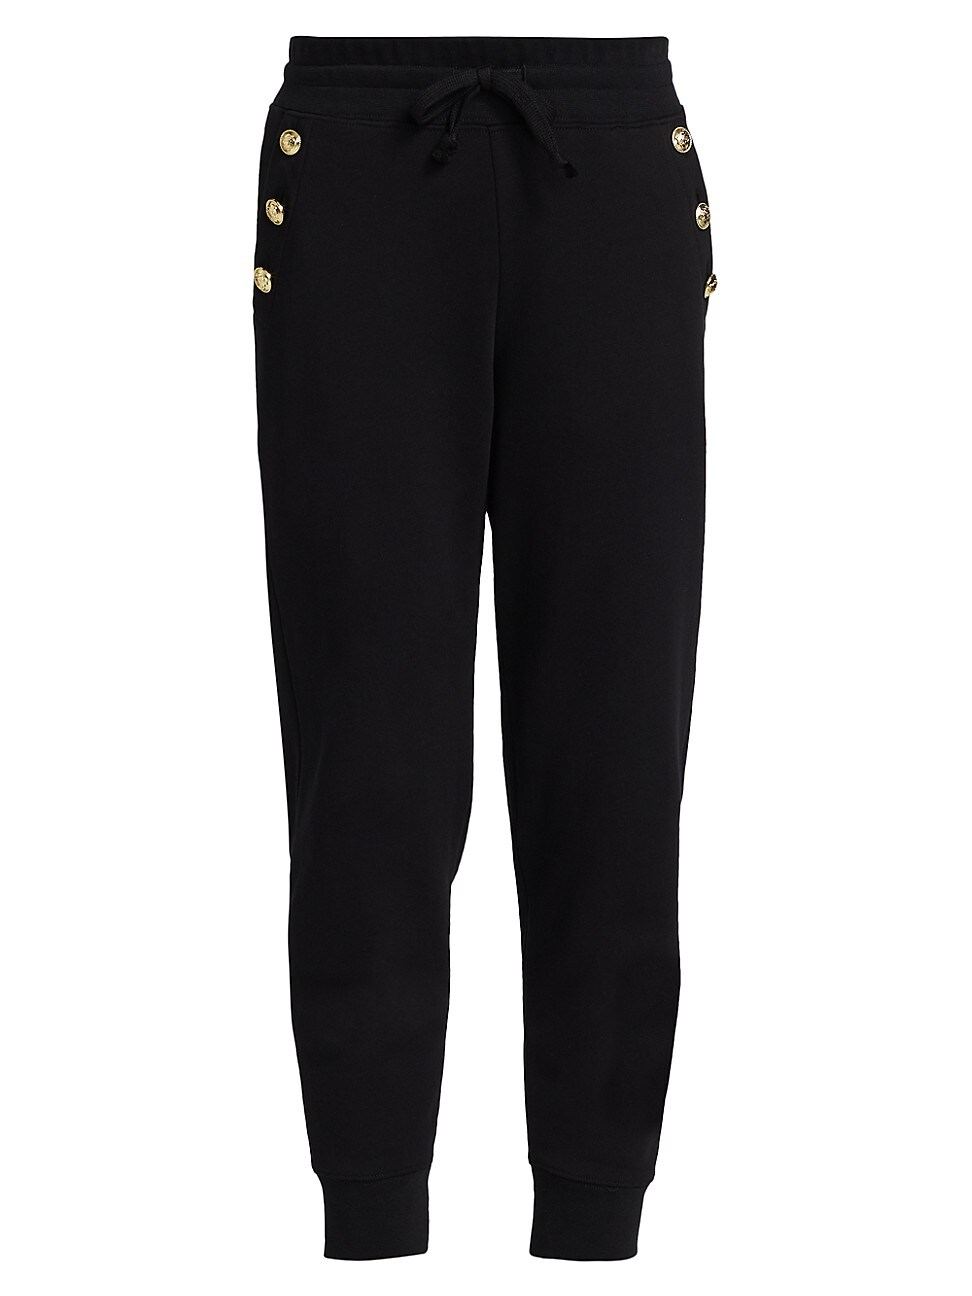 Derek Lam 10 Crosby WOMEN'S JAX SAILOR STRAIGHT-LEG SWEATPANTS